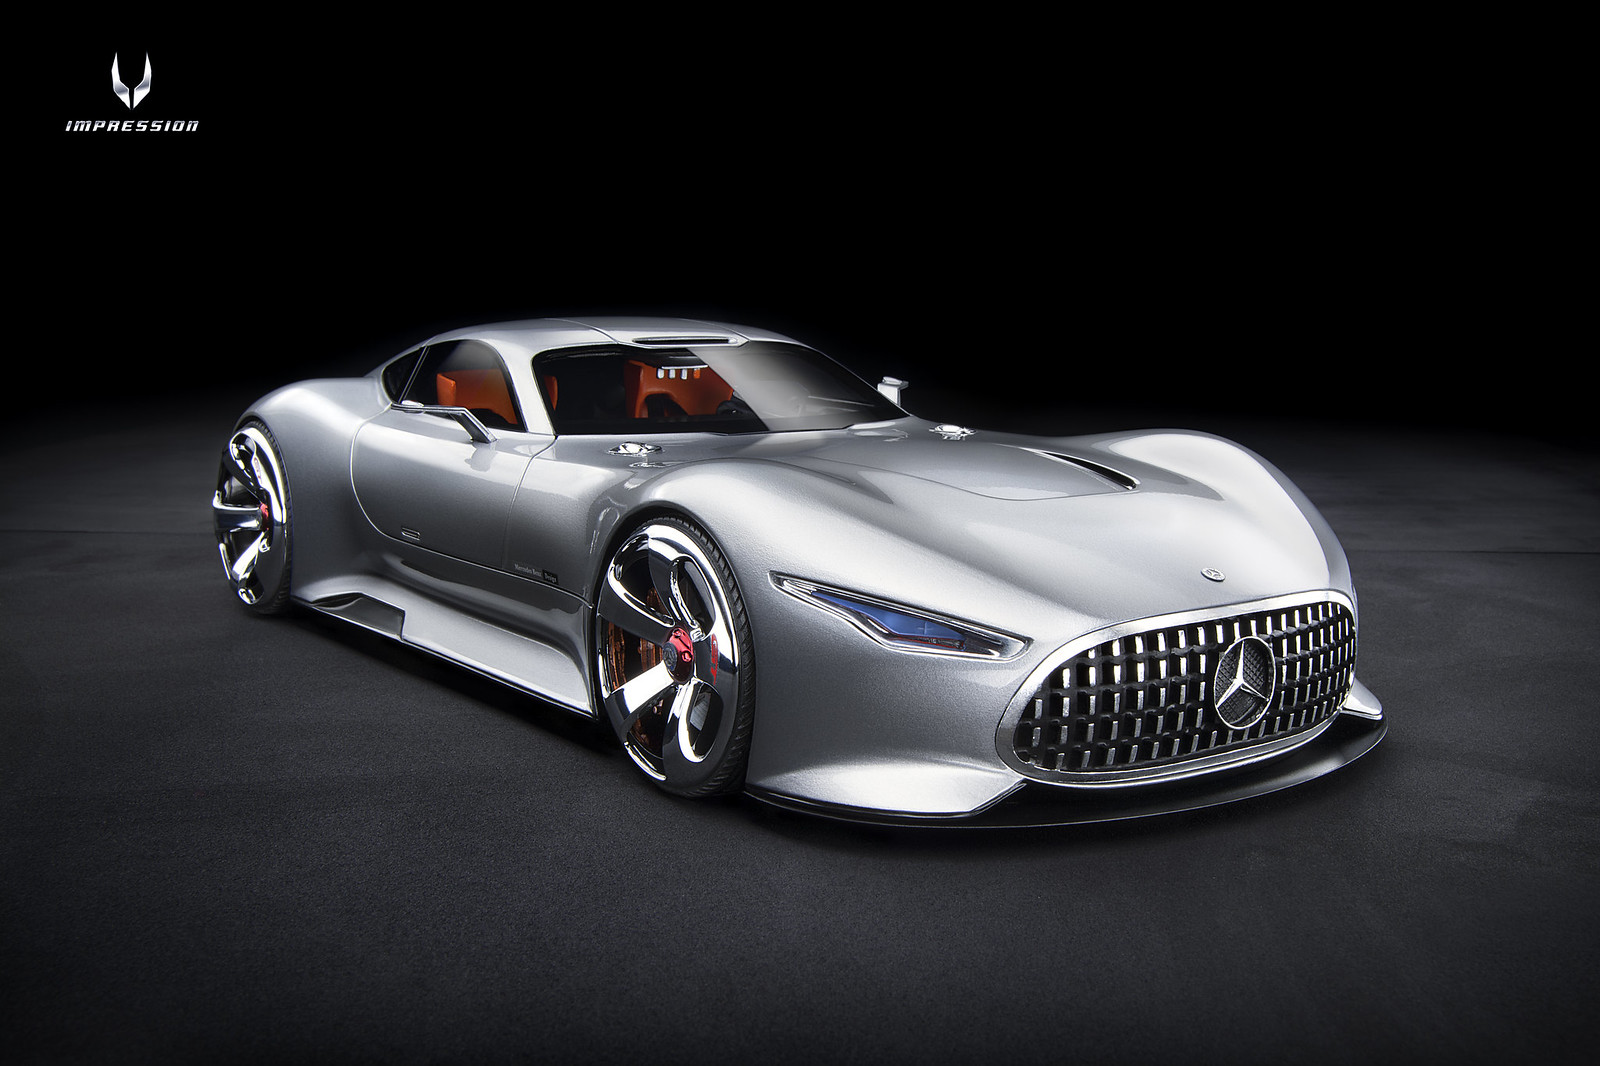 Model 777 1 18 Mercedes Benz Amg Vision Gran Turismo Resin